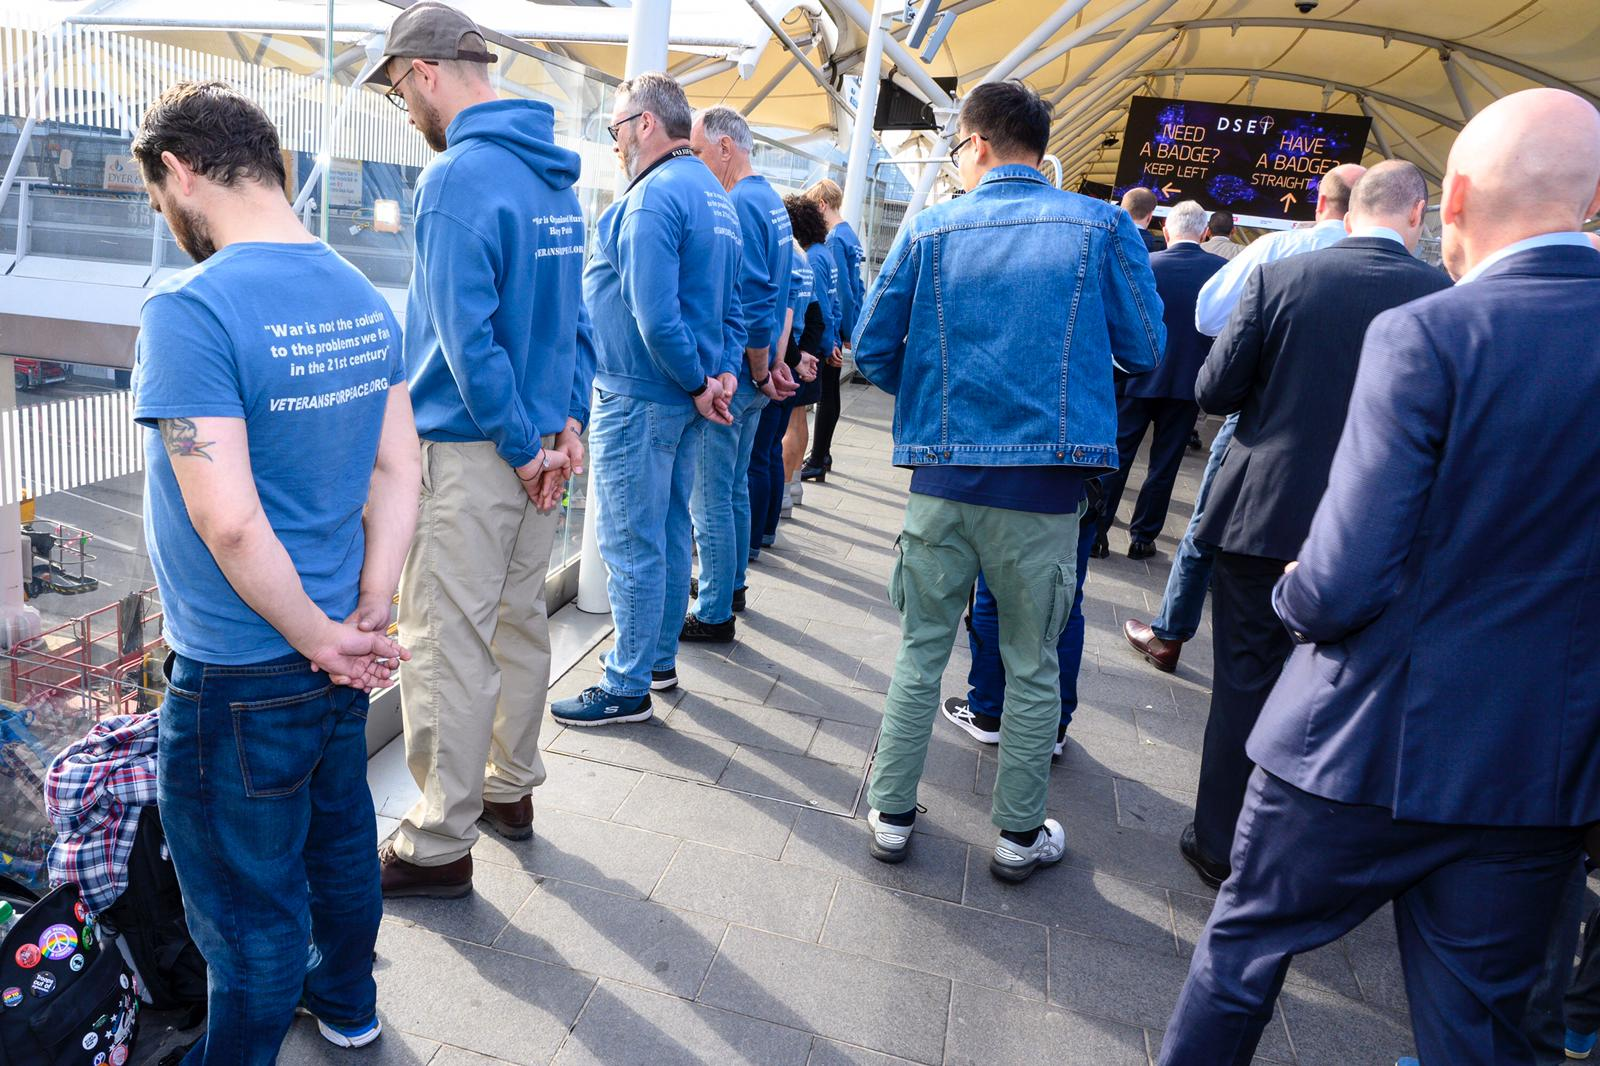 SILENT PROTEST AT THE LONDON ARMS FAIR post image